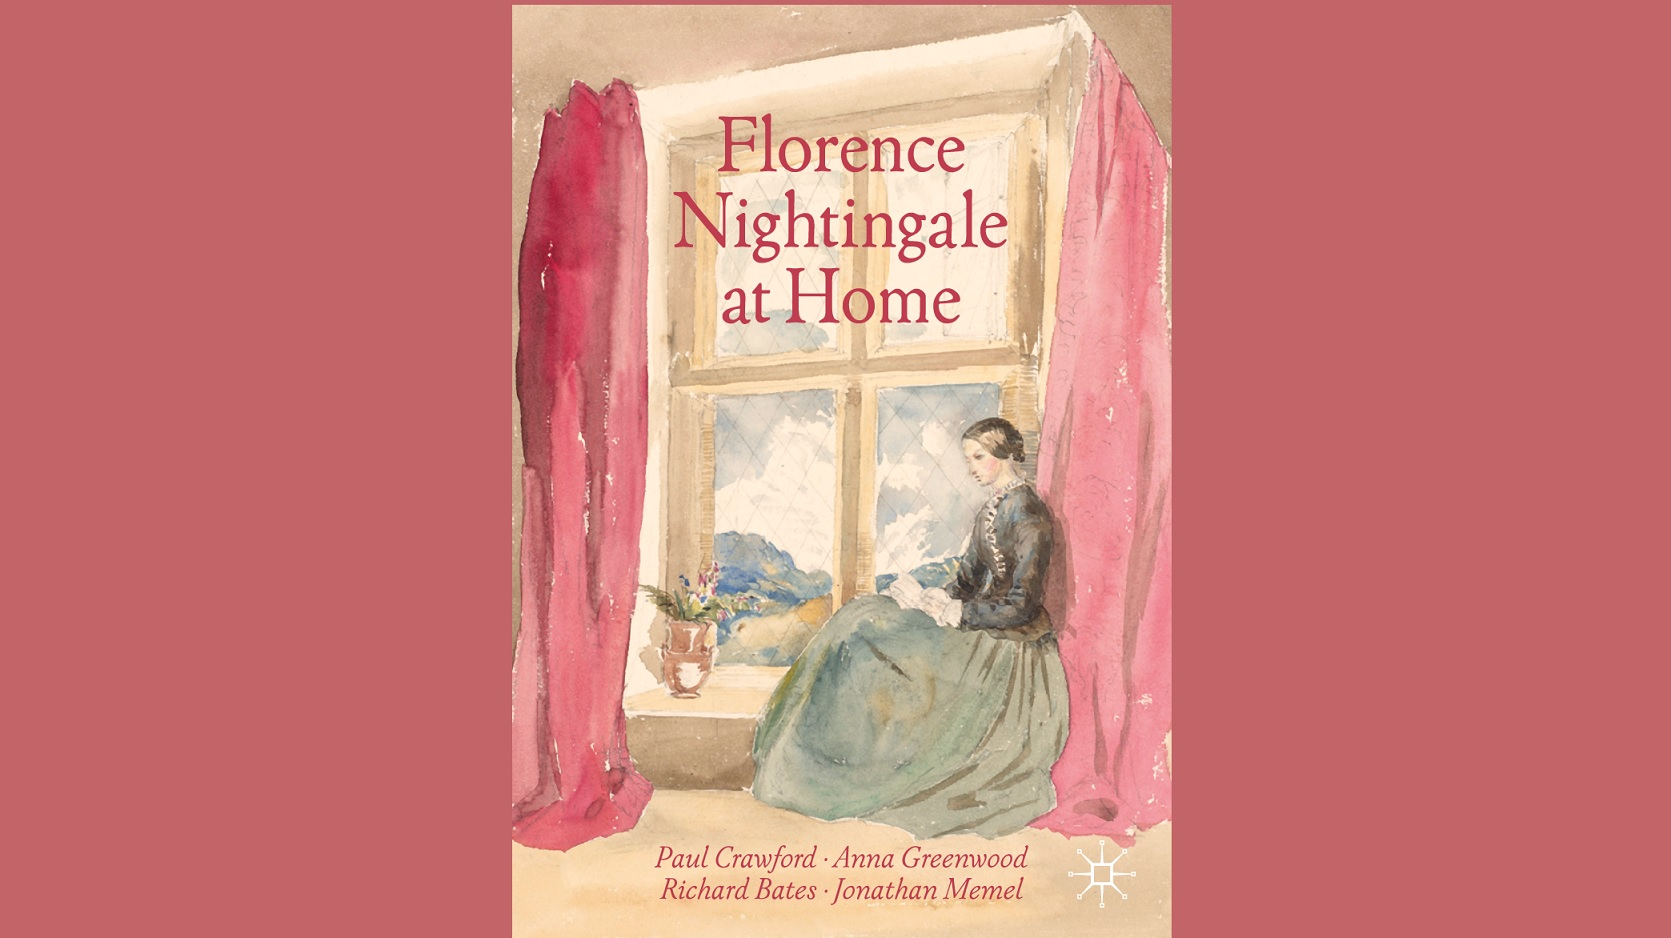 Florence Nightingale at Home Book Cover, RCN Library and Archive Service